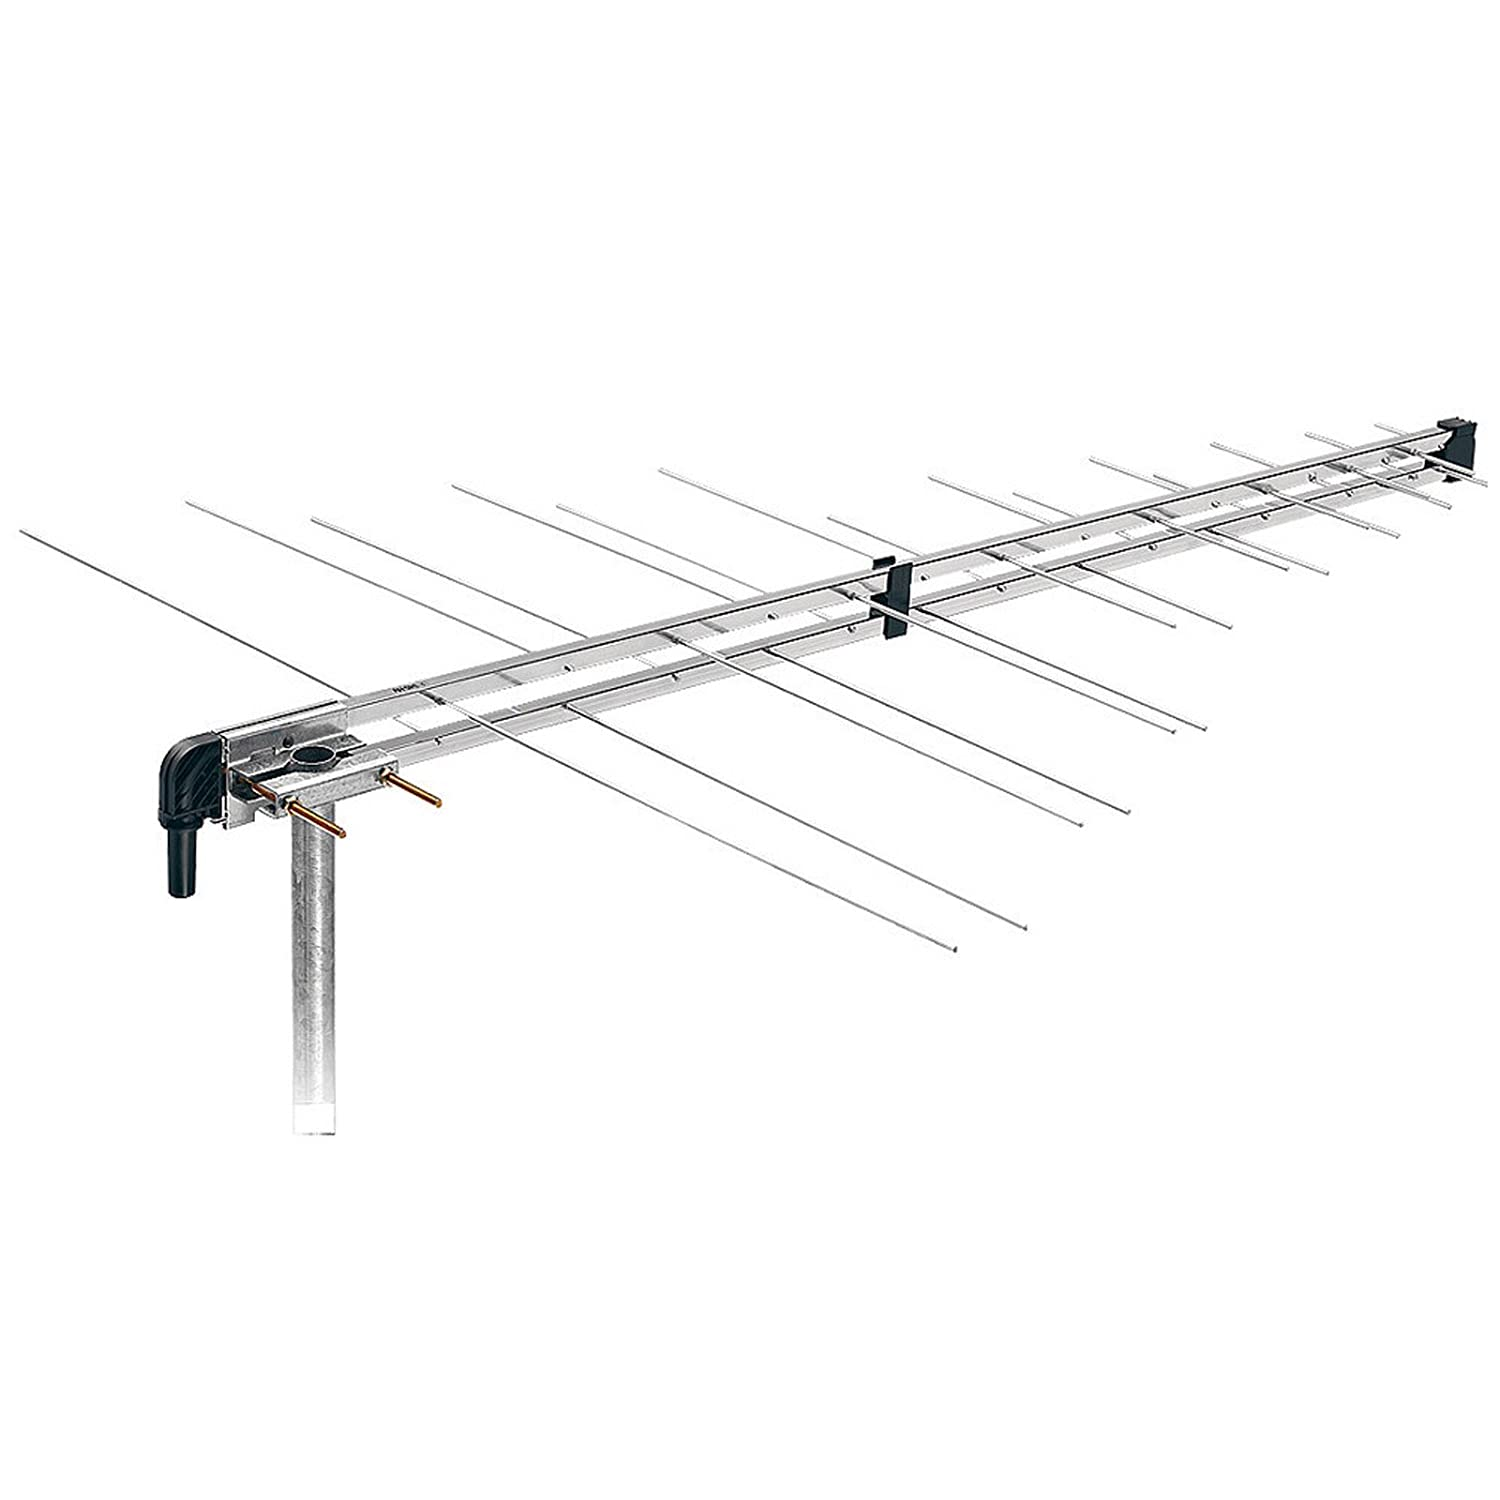 Possible To Extend The Yagi End Of A Vhf Uhf Antenna